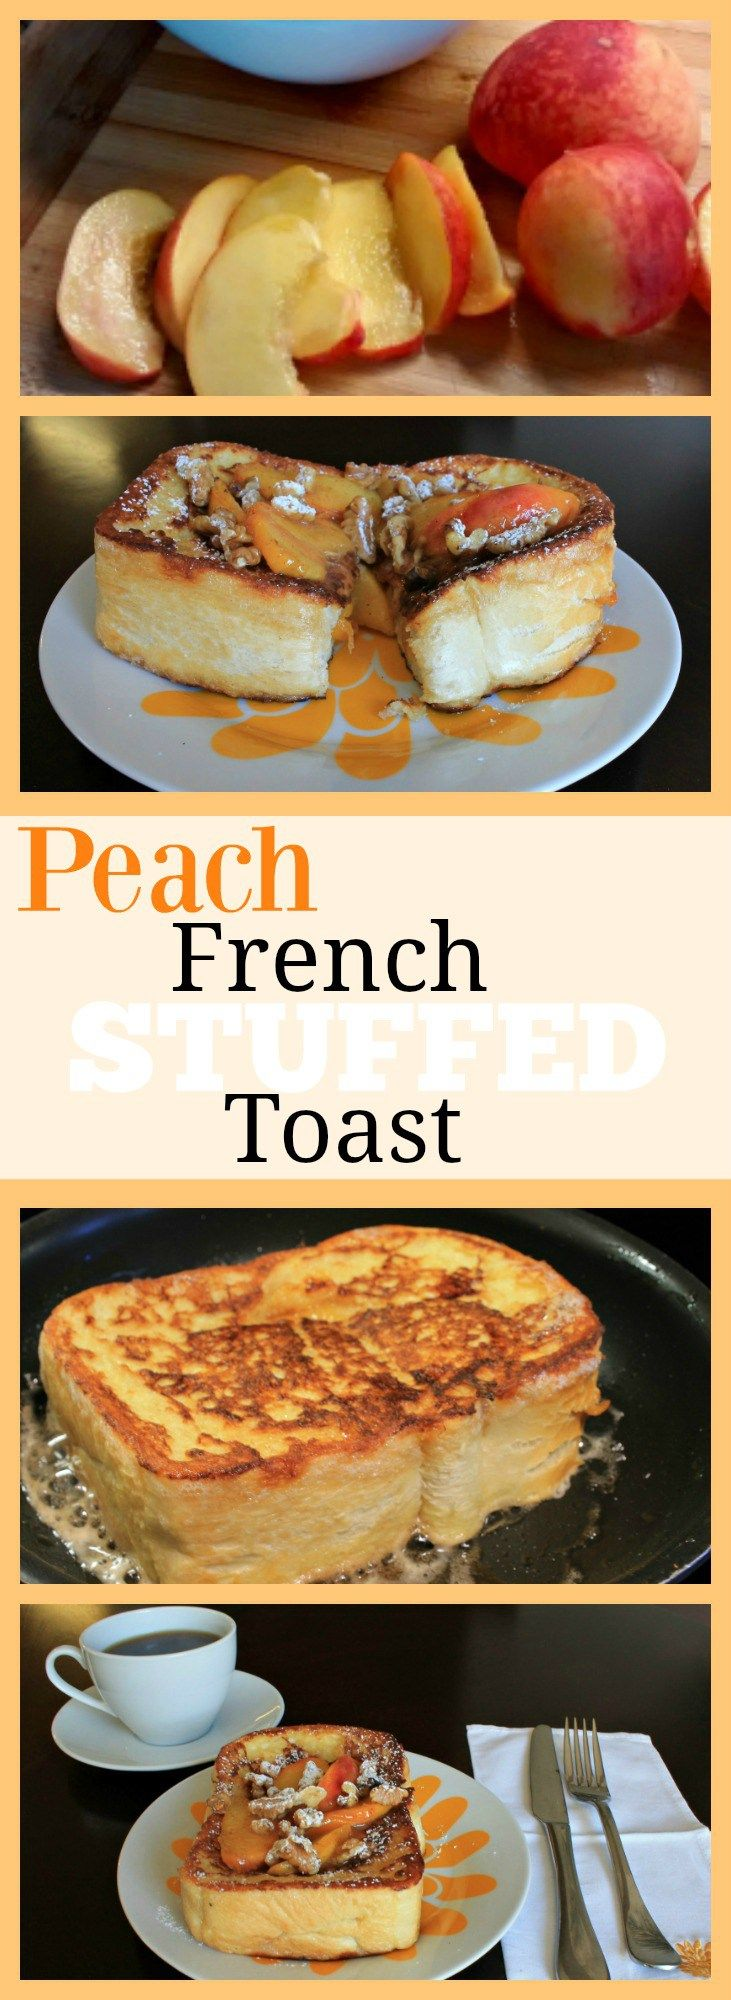 Peach Stuffed French Toast - The perfect start to your morning! Using fresh peaches and toasted walnuts this french toast is to die for! Find the full recipe here: www.theoliveblogger.com/2016/08/12/peach-stuffed-french-toast-recipe-foodie-friday/